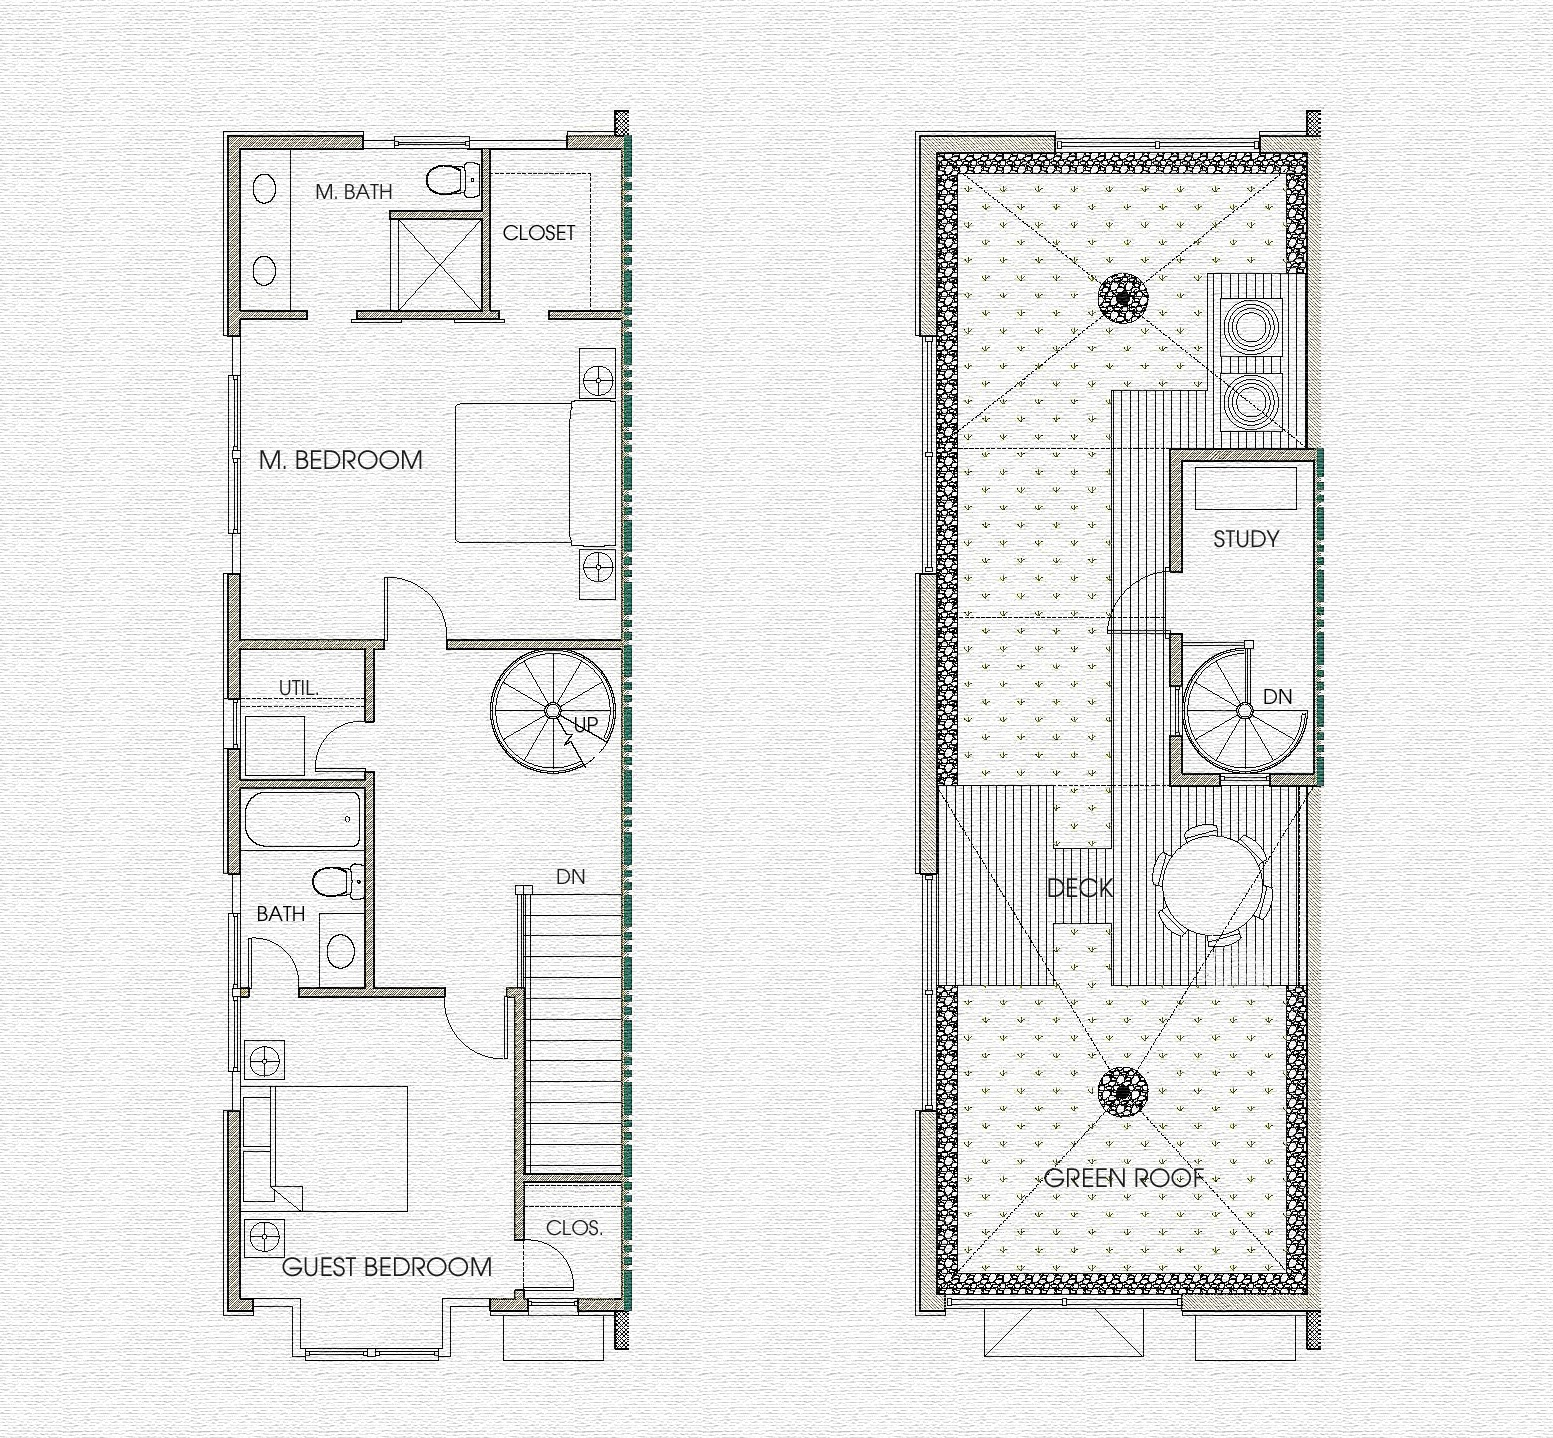 62 Gadsden Floor Plans 3